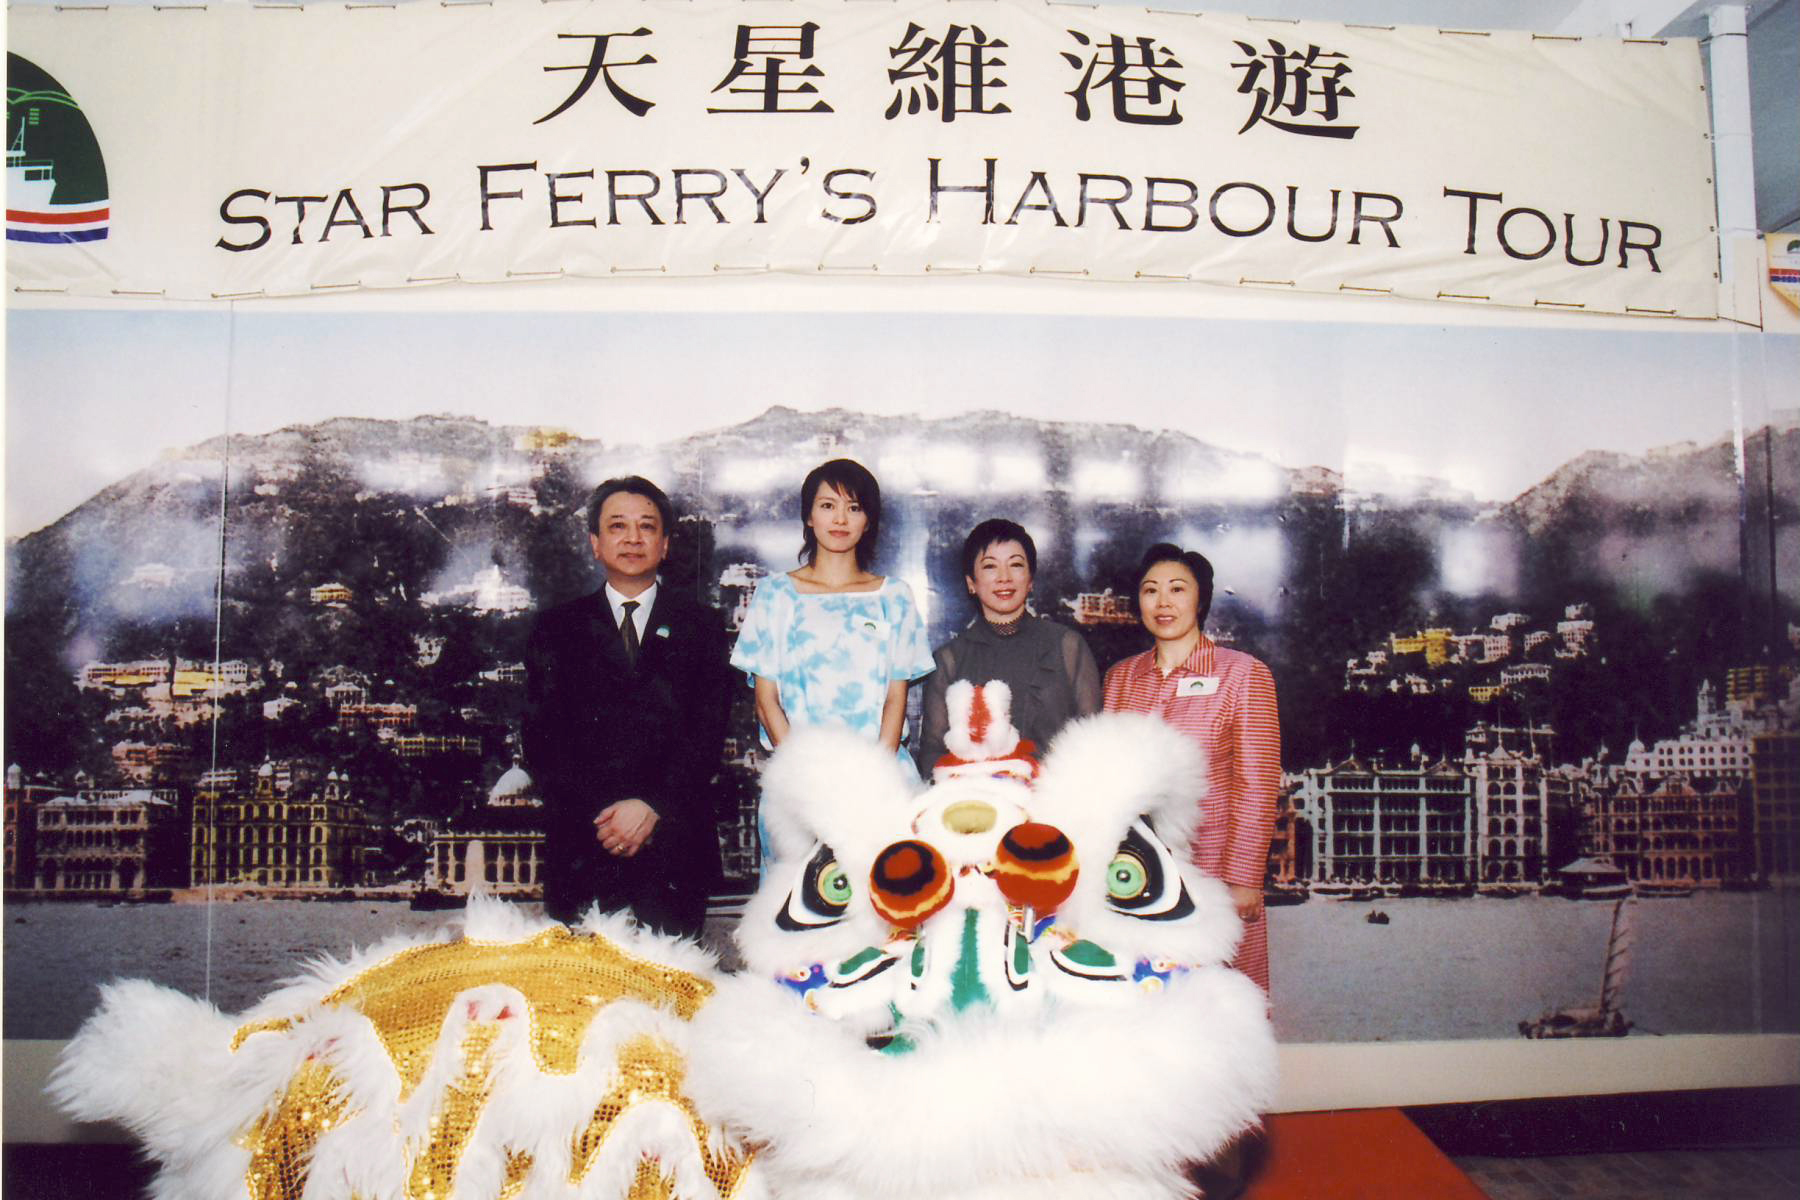 Ms. Eva Cheng JP (Commissioner for Tourism), Mrs. Selina Chow GBS JP (Chairman of the Hong Kong Tourism Board) and Ms. Gigi Leung (Hong Kong artist) officiated the launching ceremony of Star Ferry's Harbour Tour in July 2003